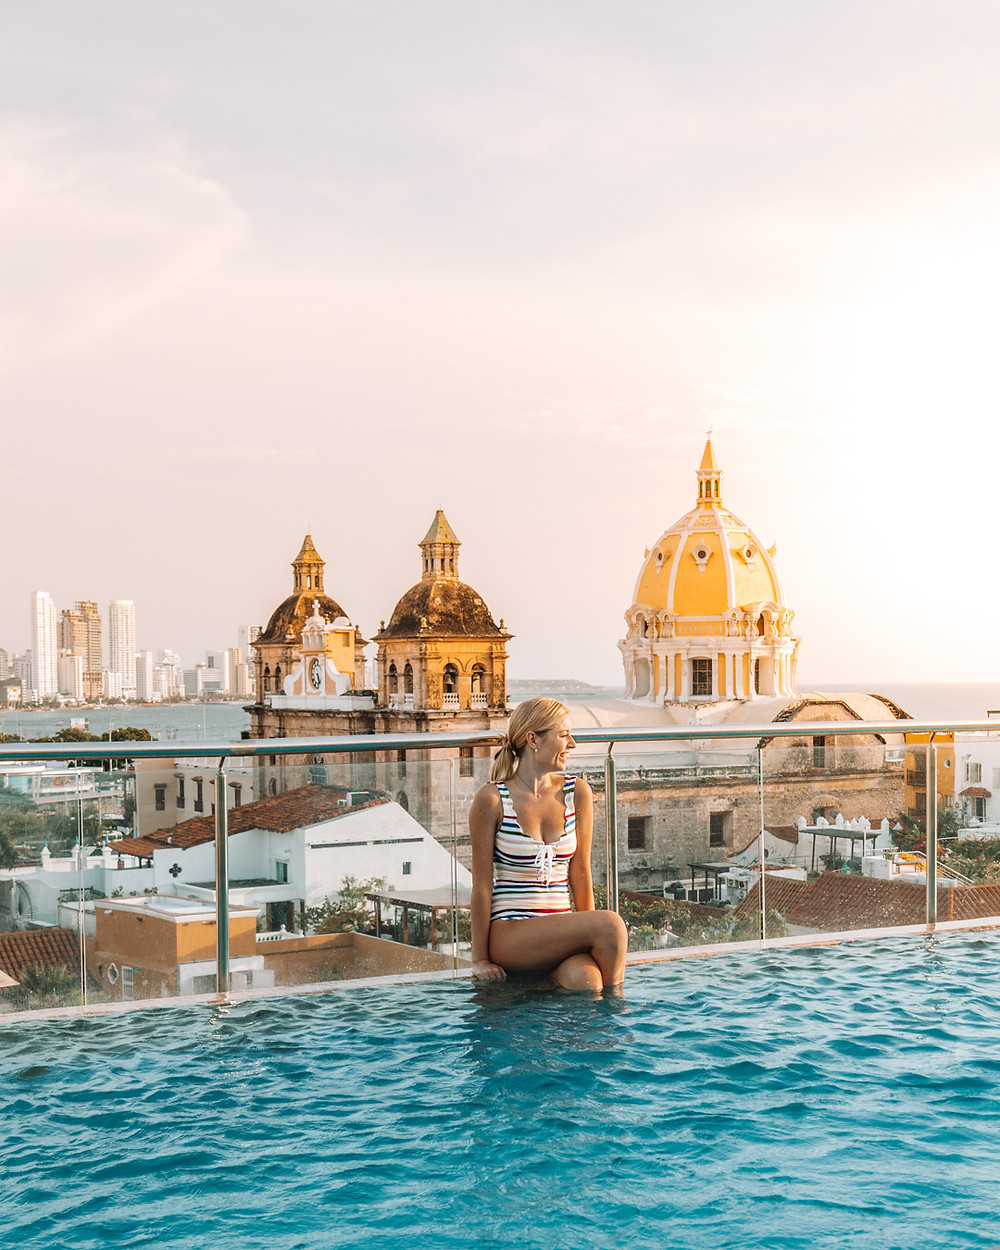 The most amazing view from the rooftop pool at Movich Hotel